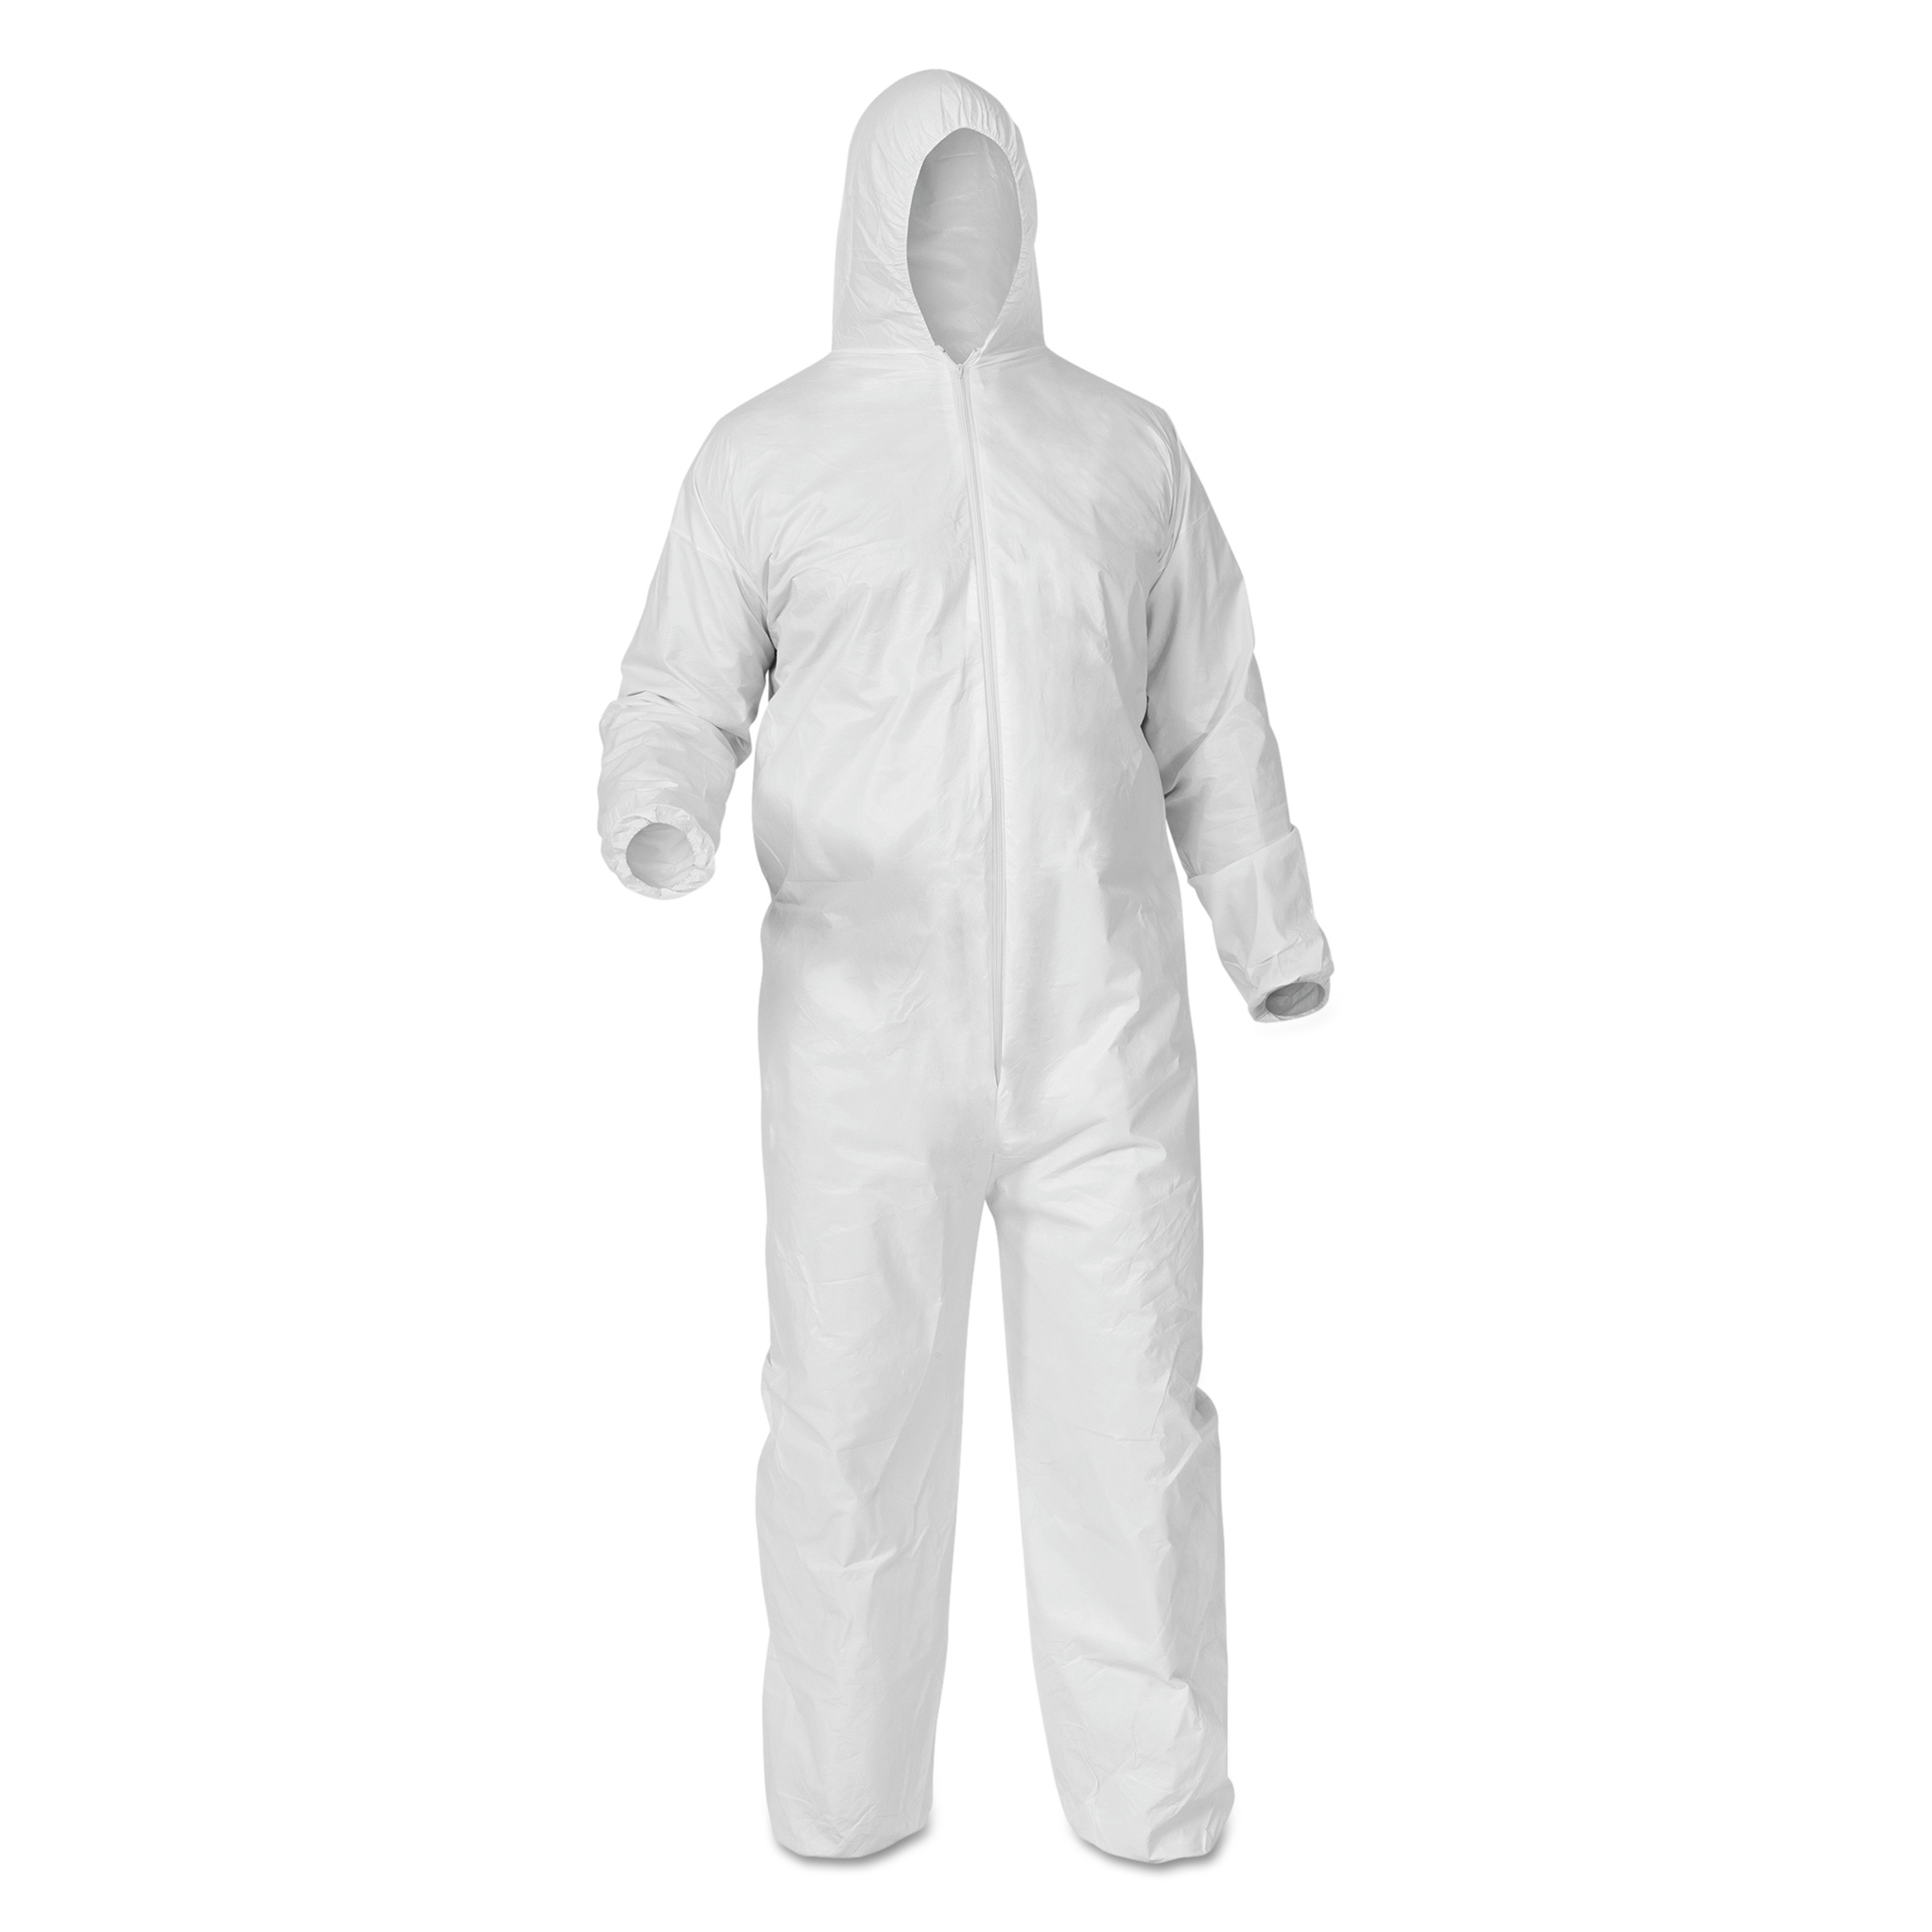 A35 Coveralls, Hooded, Large, White, 25 Per Carton by Kimberly Clark